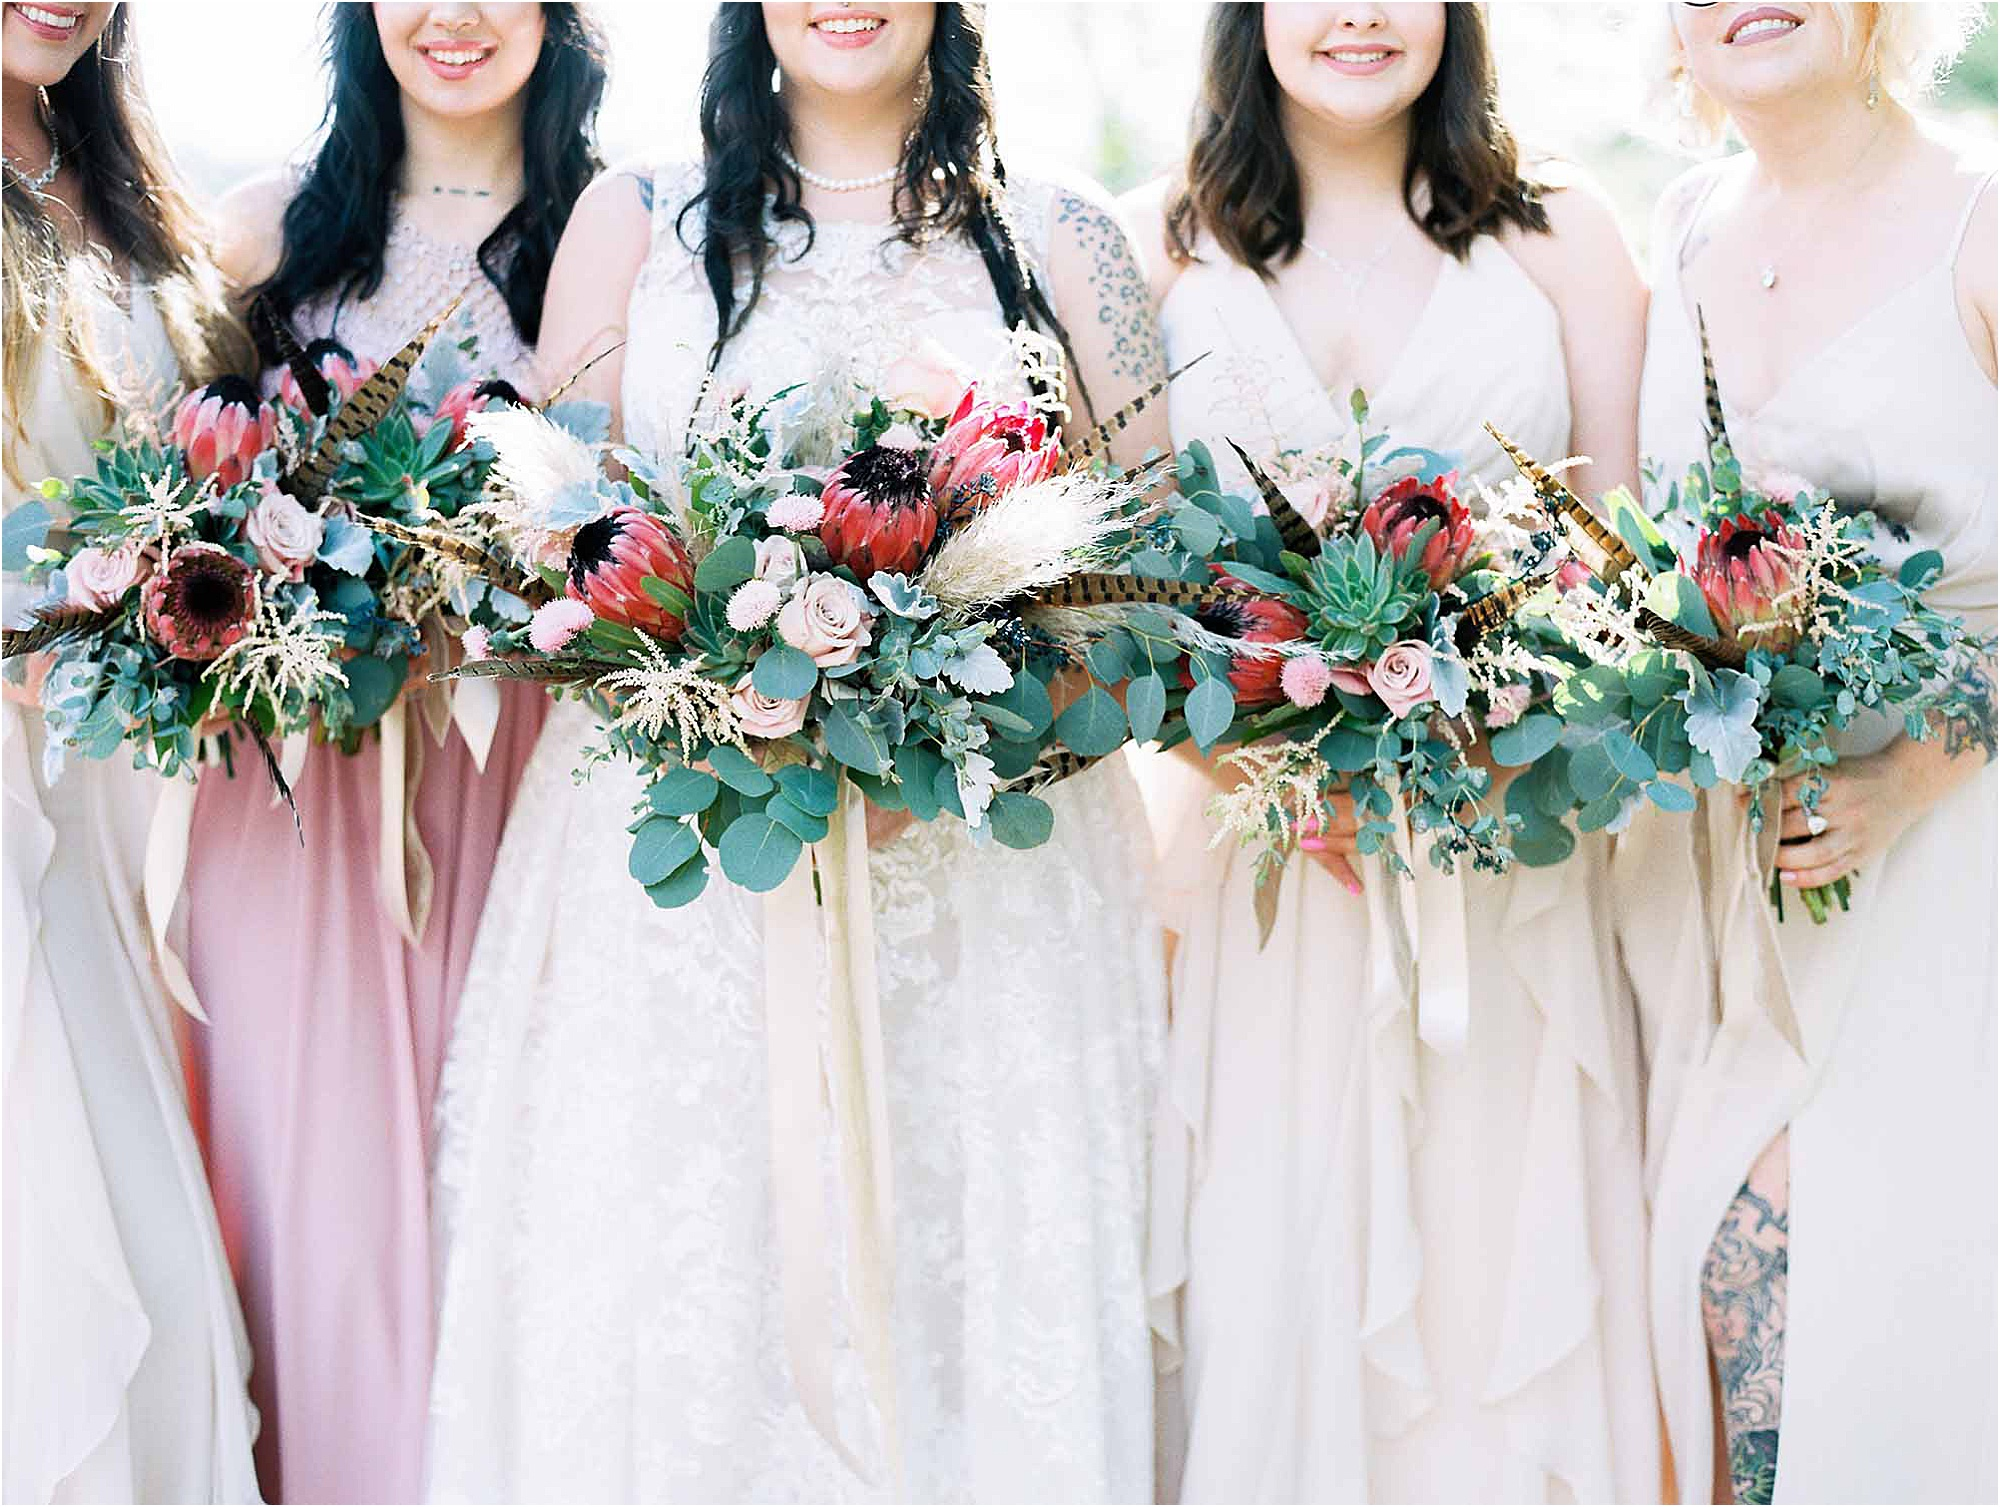 bride and bridesmaids holding pink and green wedding bouquets